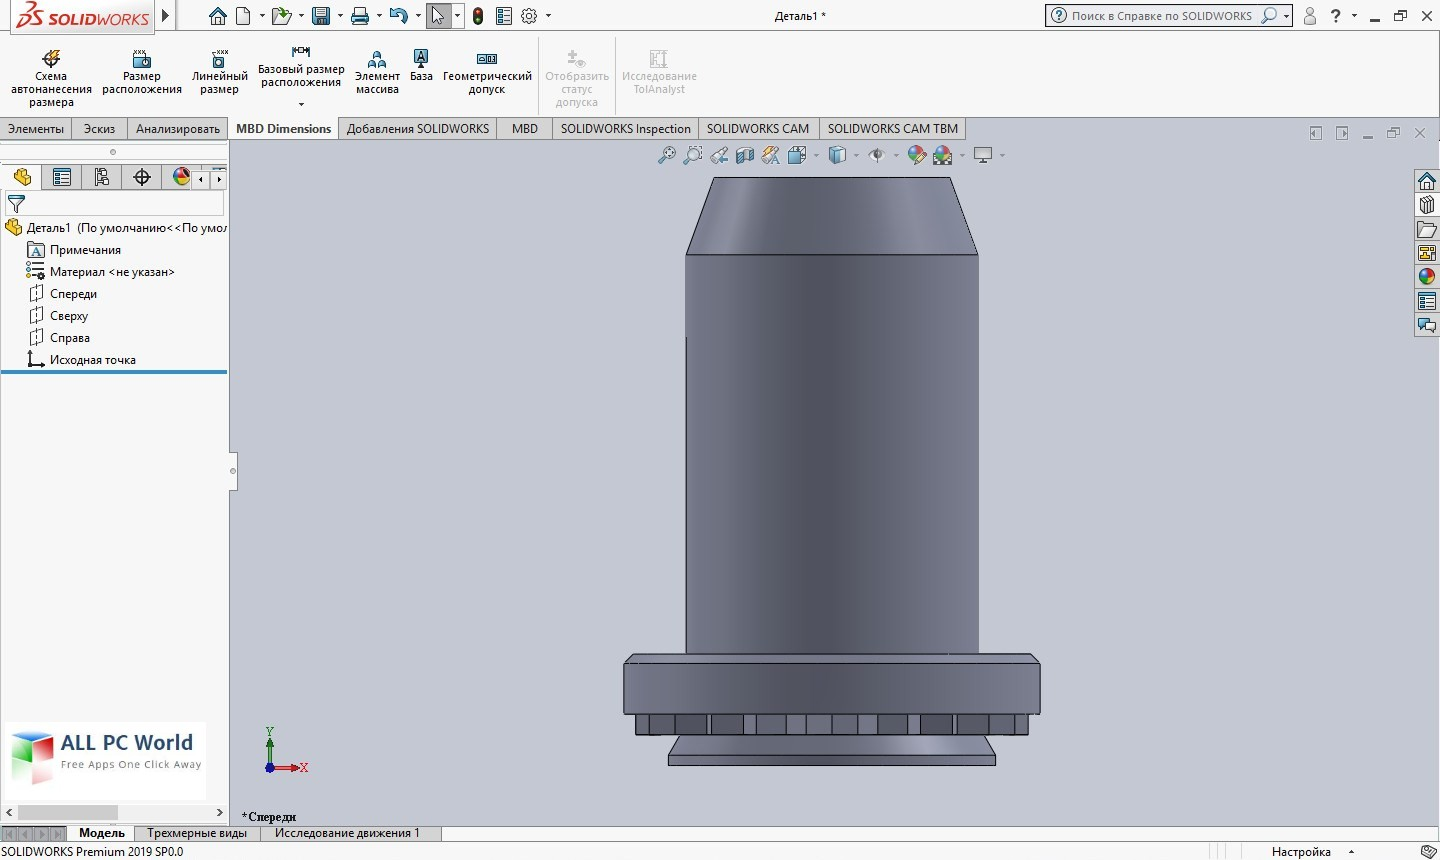 SolidWorks Premium 2019 SP2 Free Download - ALL PC World